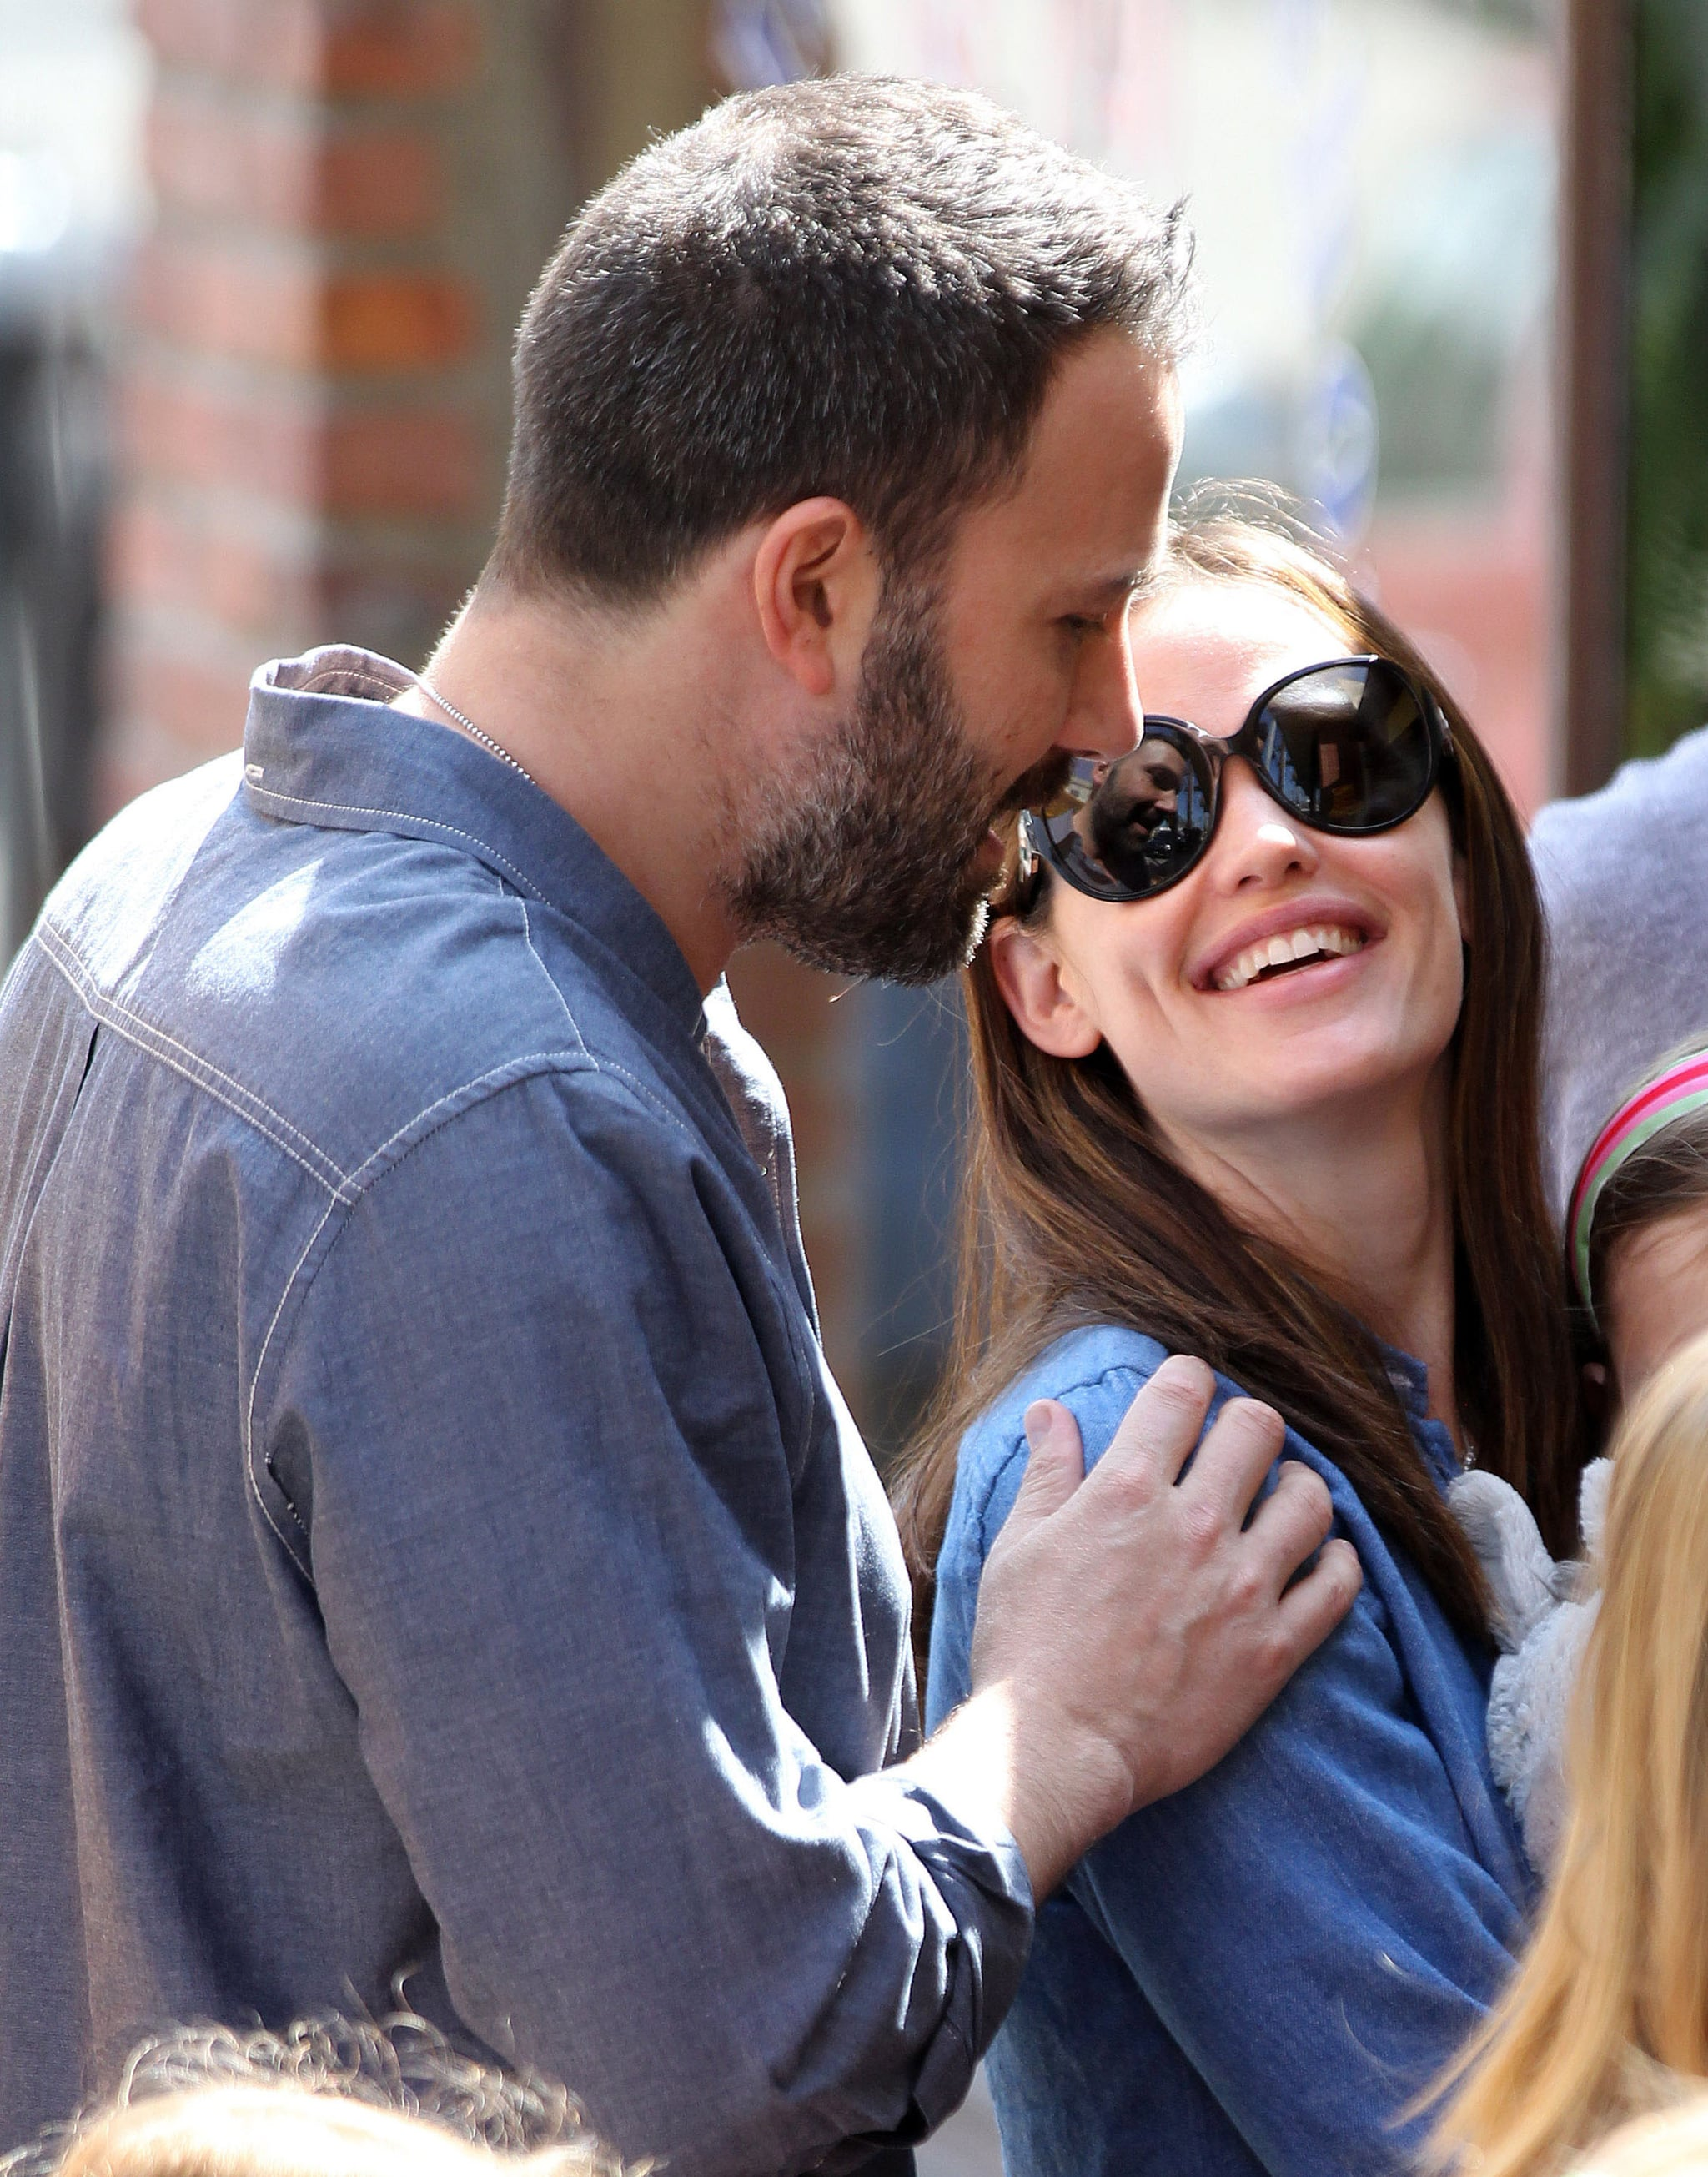 Ben Affleck put his hand on Jennifer Garner's shoulder during a family outing in Pacific Palisades in March.